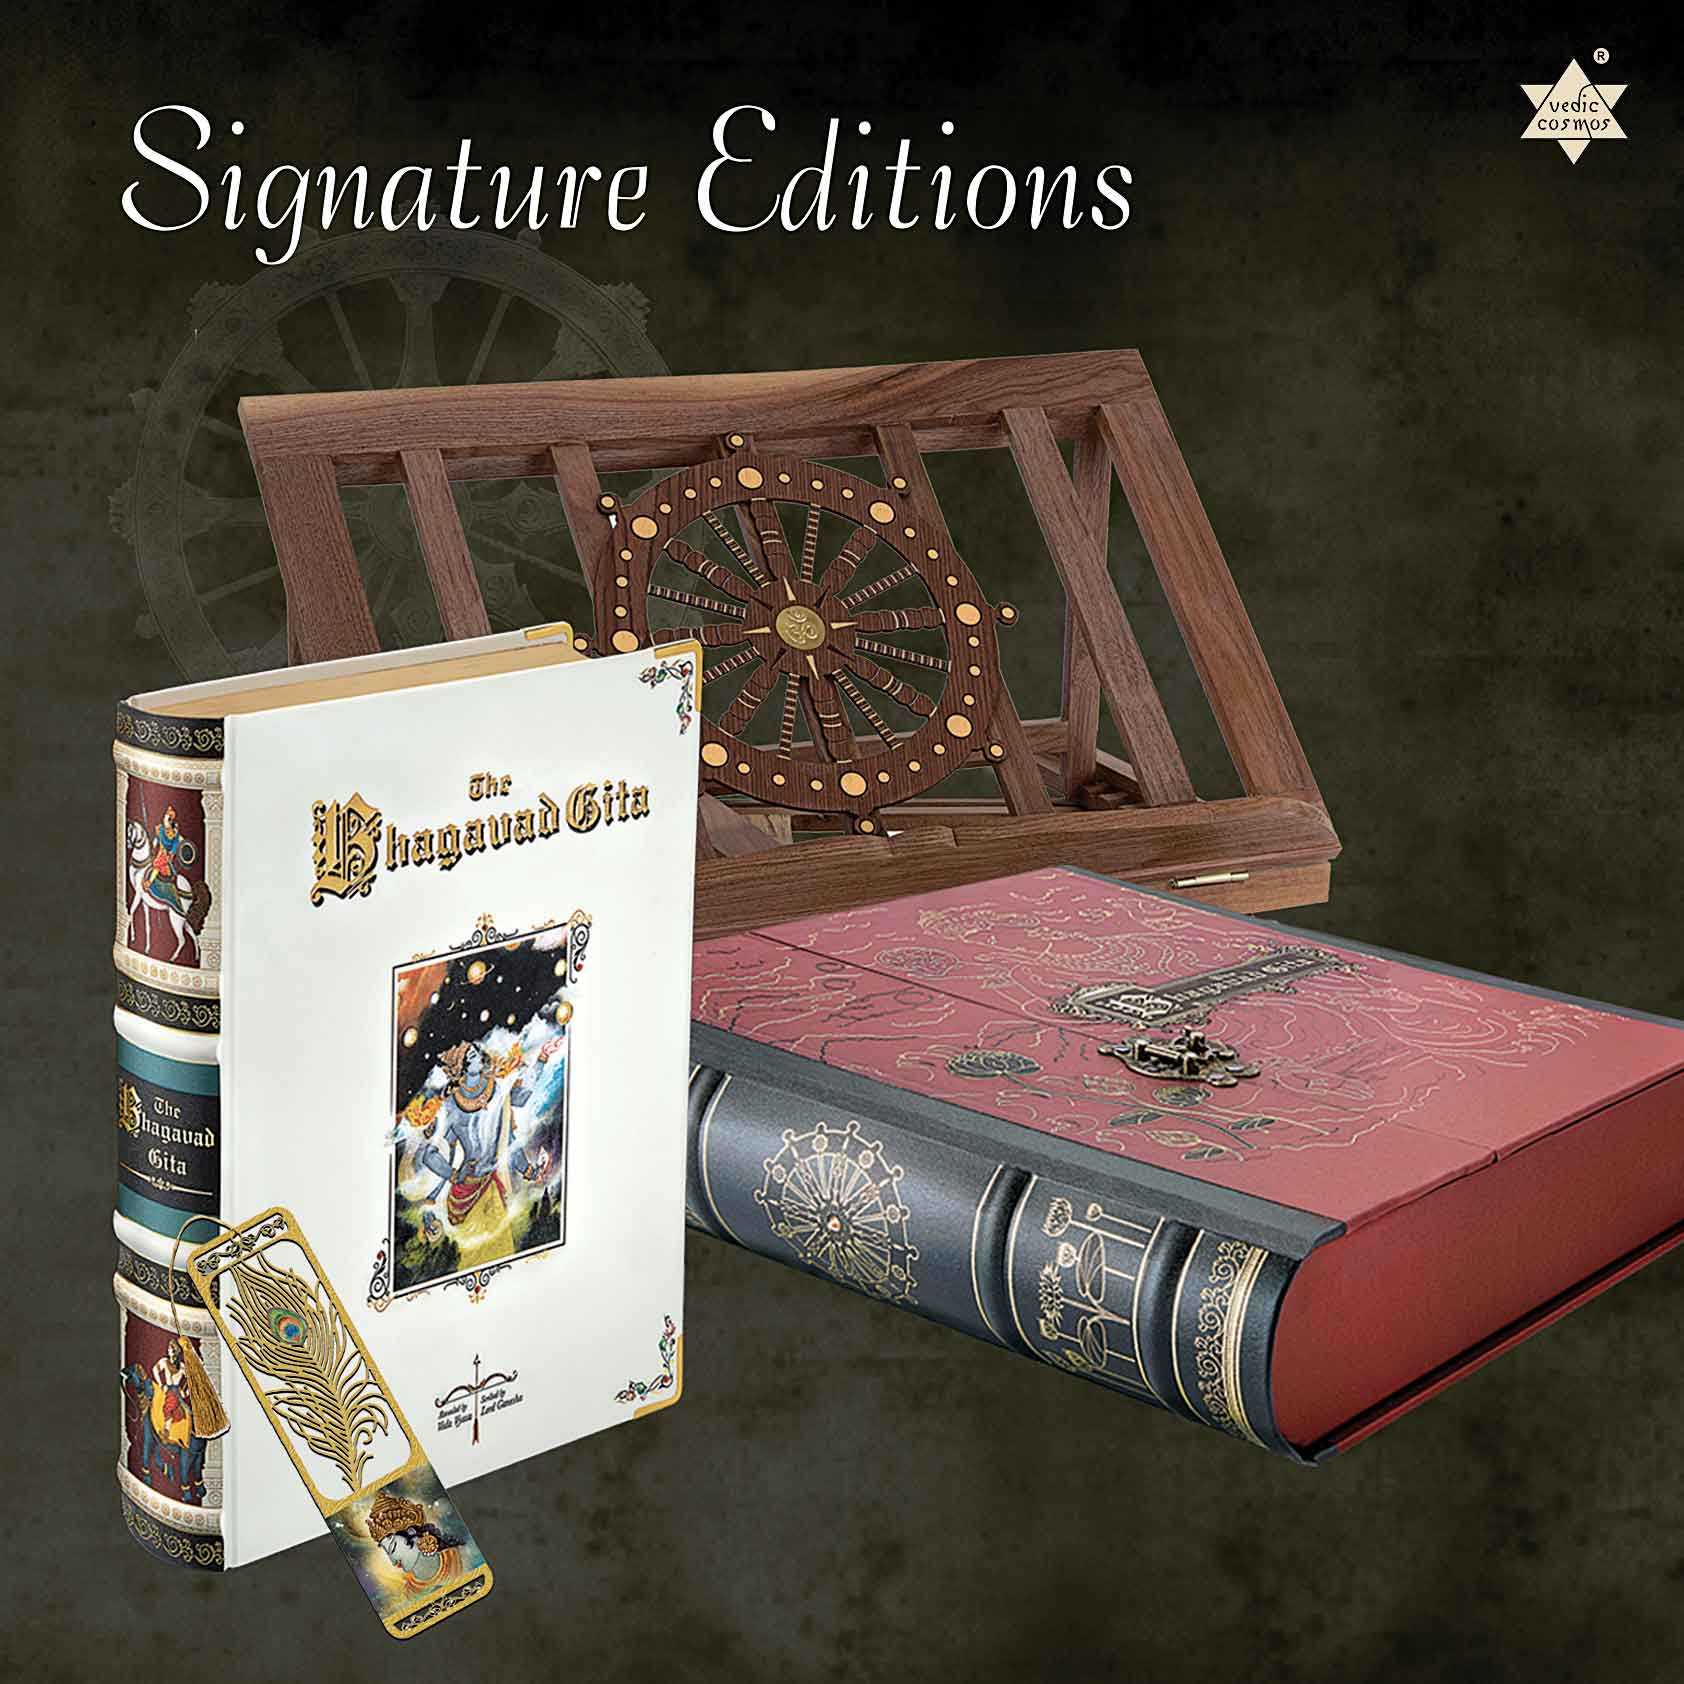 Signature Edition Books